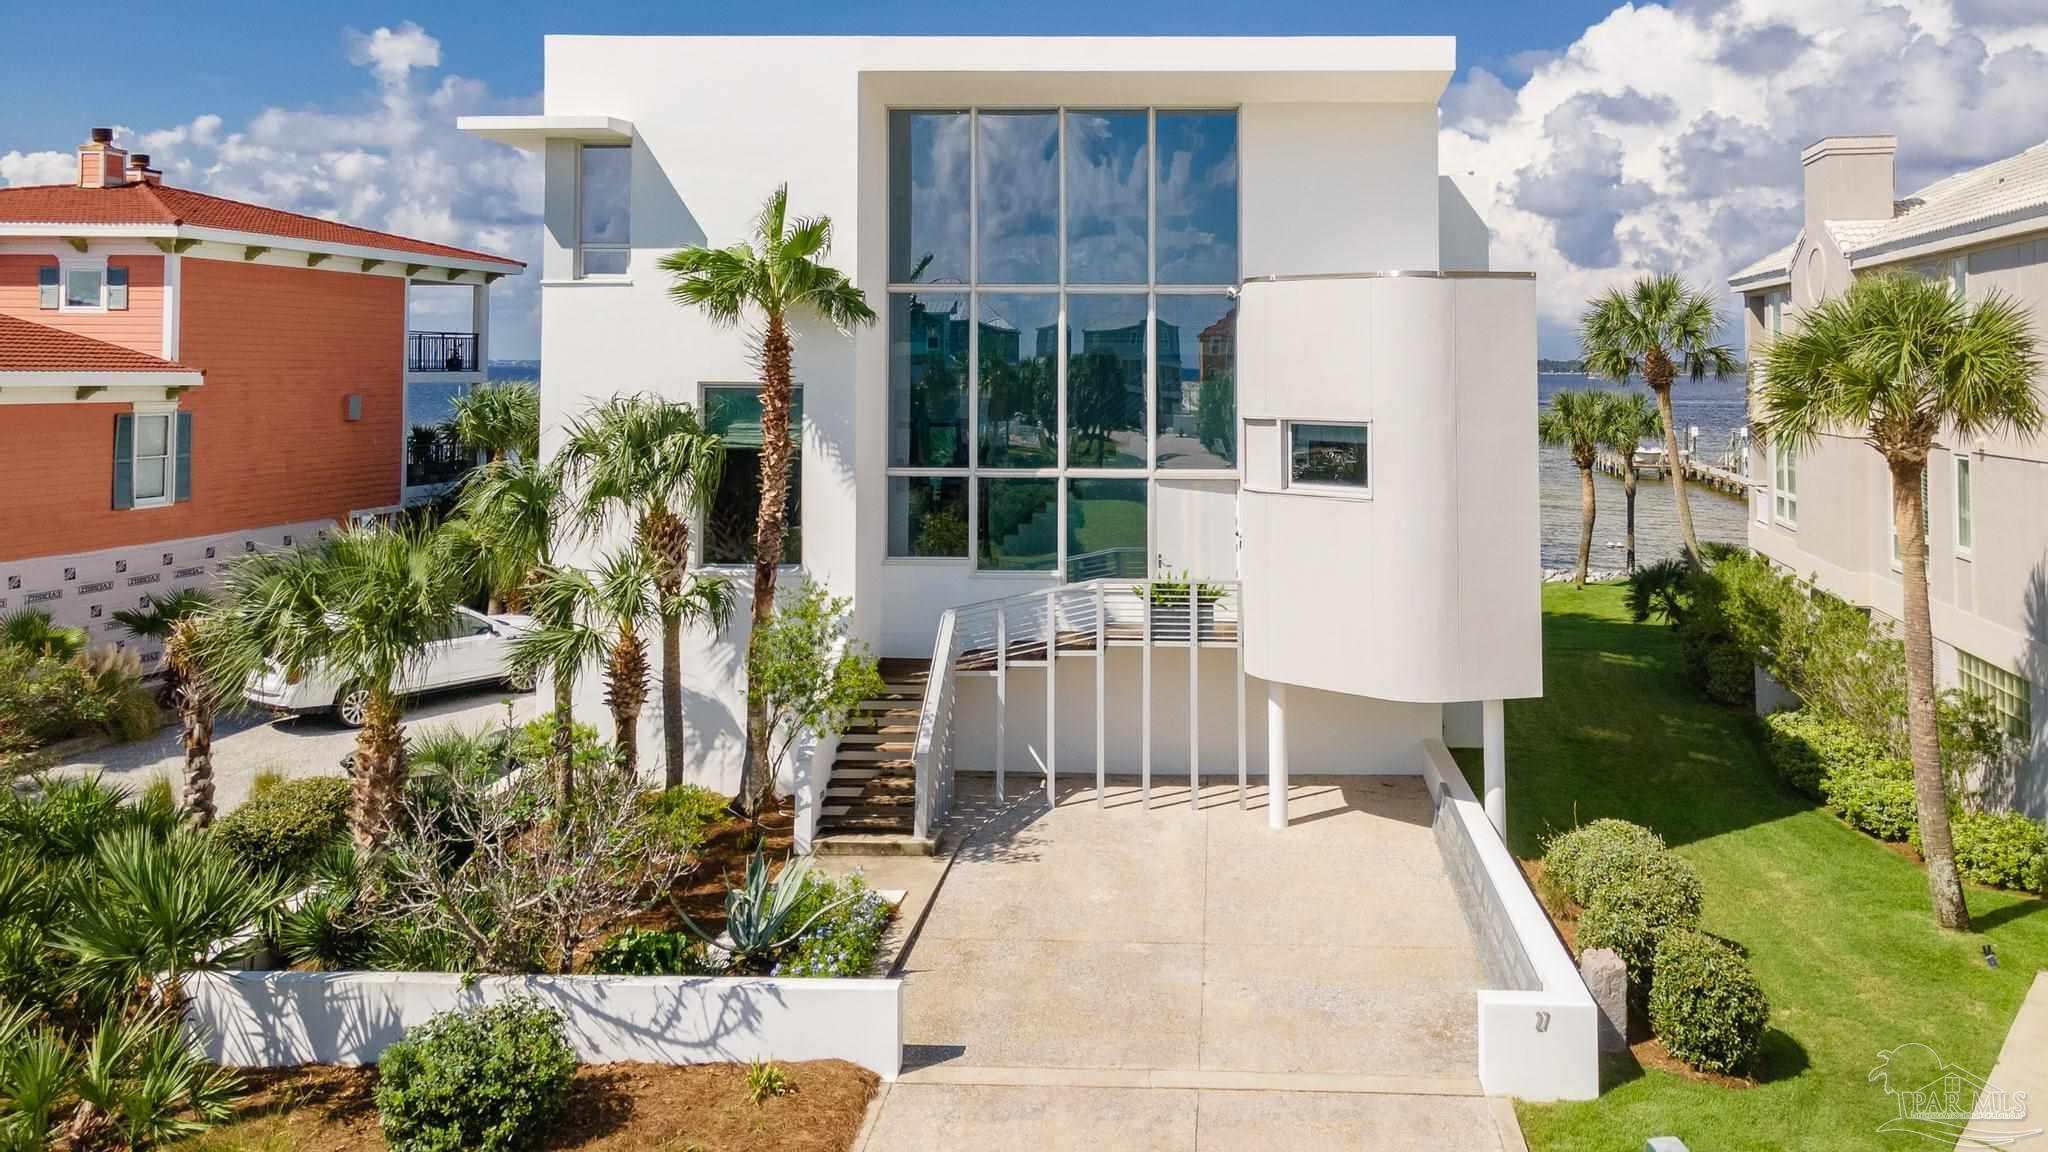 """An amazing coastal home that has no equal on Pensacola Beach in its design, construction and location.  Built on two lots, no expense was spared when this 4,864 sq ft, 4+ bedroom, 4 full bath home was built in the gated beach community of DeLuna Point.  Dramatic architectural details such as the glass catwalk spanning across the large entrance steel-railed stairway featuring full height windows and 2-story soaring ceilings provide an elevated sense of living throughout the home. As you walk into the open main floor living areas, you are greeted by views spanning the entire length of the home. The well-appointed kitchen features elegant cabinetry, professional appliances and butler kitchen behind an Italian glass tiled wall. The sliding doors create connectivity to the terrace providing additional entertaining space for outside dining & grilling and a relaxing space to capture the gentle island breezes while watching sunsets. The large 3rd floor primary bedroom offers a private balcony, fireplace, spa bathroom, and expansive water views. The 4th bedroom is appointed with 4 built-in bunkbeds, queen bed as well as its own ensuite. The lower level will also not disappoint.  In addition to the 3-car garage, there is an additional large bunk room.  When you walk outside, you find a large, covered area for relaxation & entertaining.  Additionally, there are 2 outdoor showers and additional parking in the two driveways.  The home is adorned with Australian cypress wood floors throughout, Italian glass tile, elegant lighting and soothing colors for sophisticated comfort, a gathering and entertaining place """"by the sea"""" to be shared with family and friends.  Built like a fortress, made of concrete and steel on an elevated concrete slab, there was no damage from hurricane Sally. The private dock with lift is also built at an elevated level. There is geothermal and an elevator to connect you to each level.Community Pool, dock, beach."""